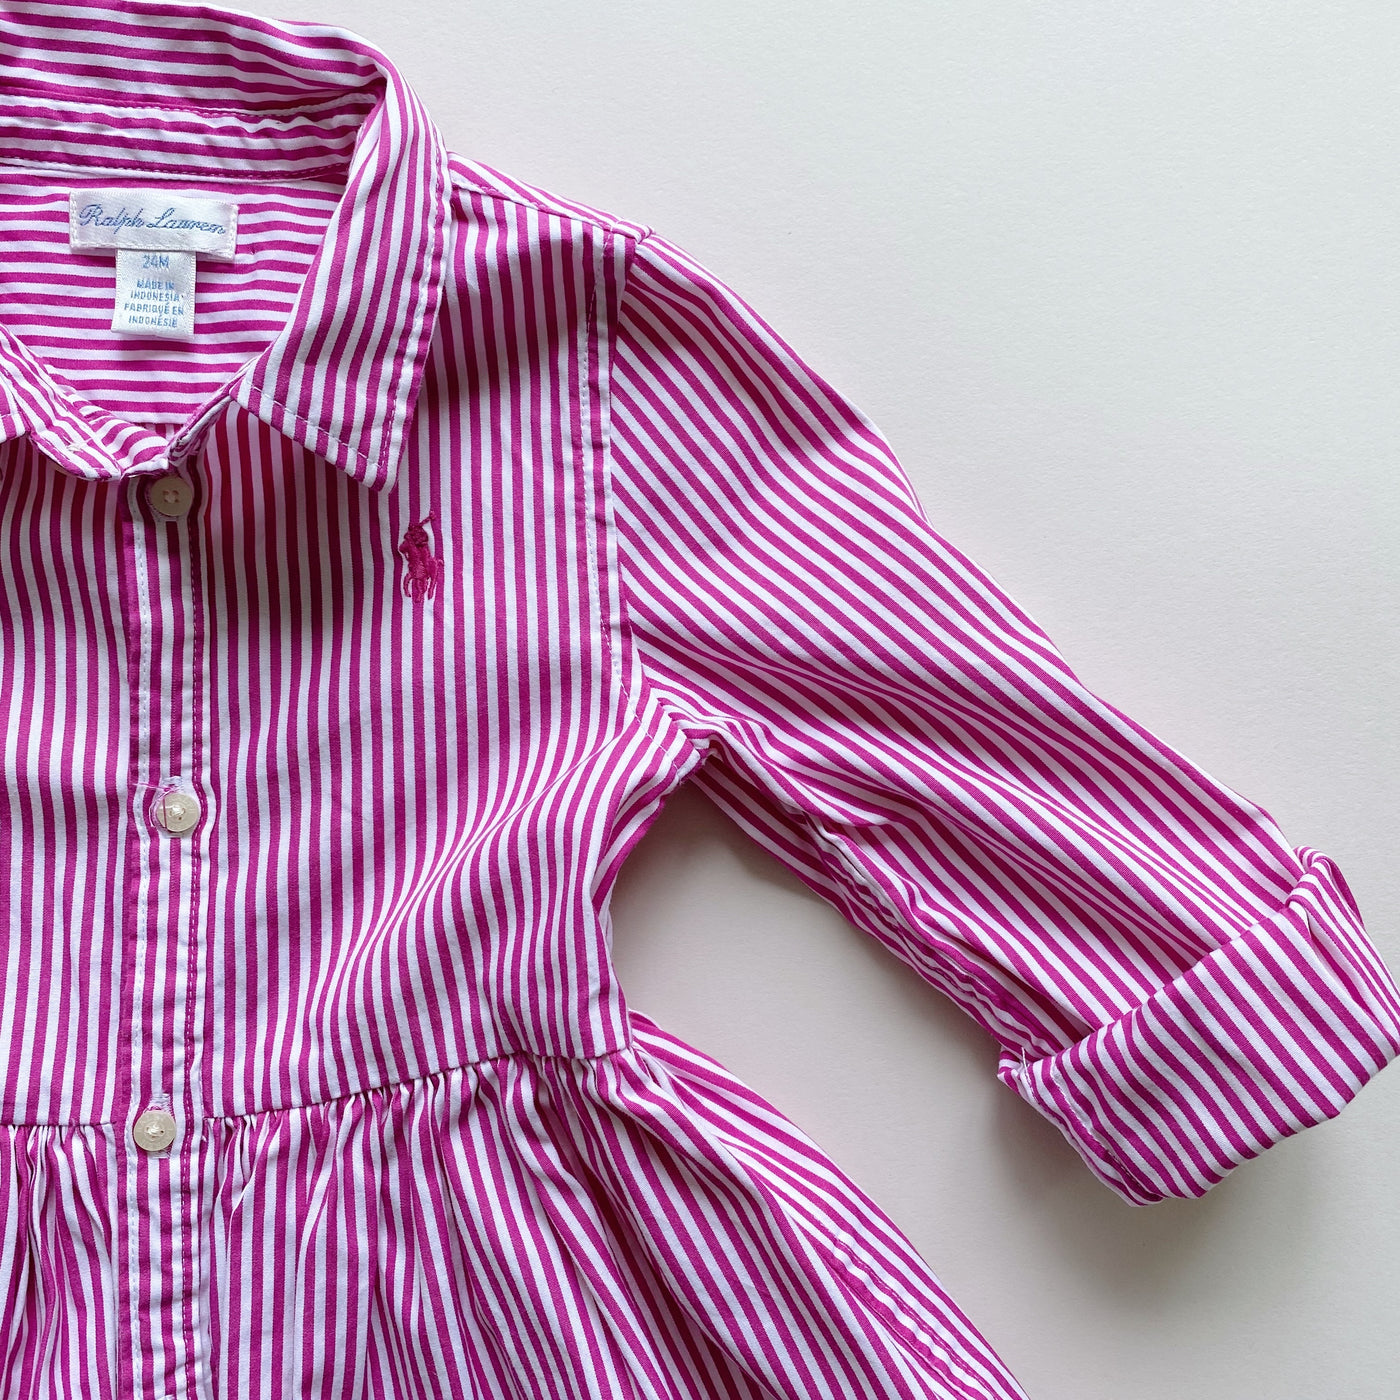 Ralph Lauren Shirt Dress / Size 24M